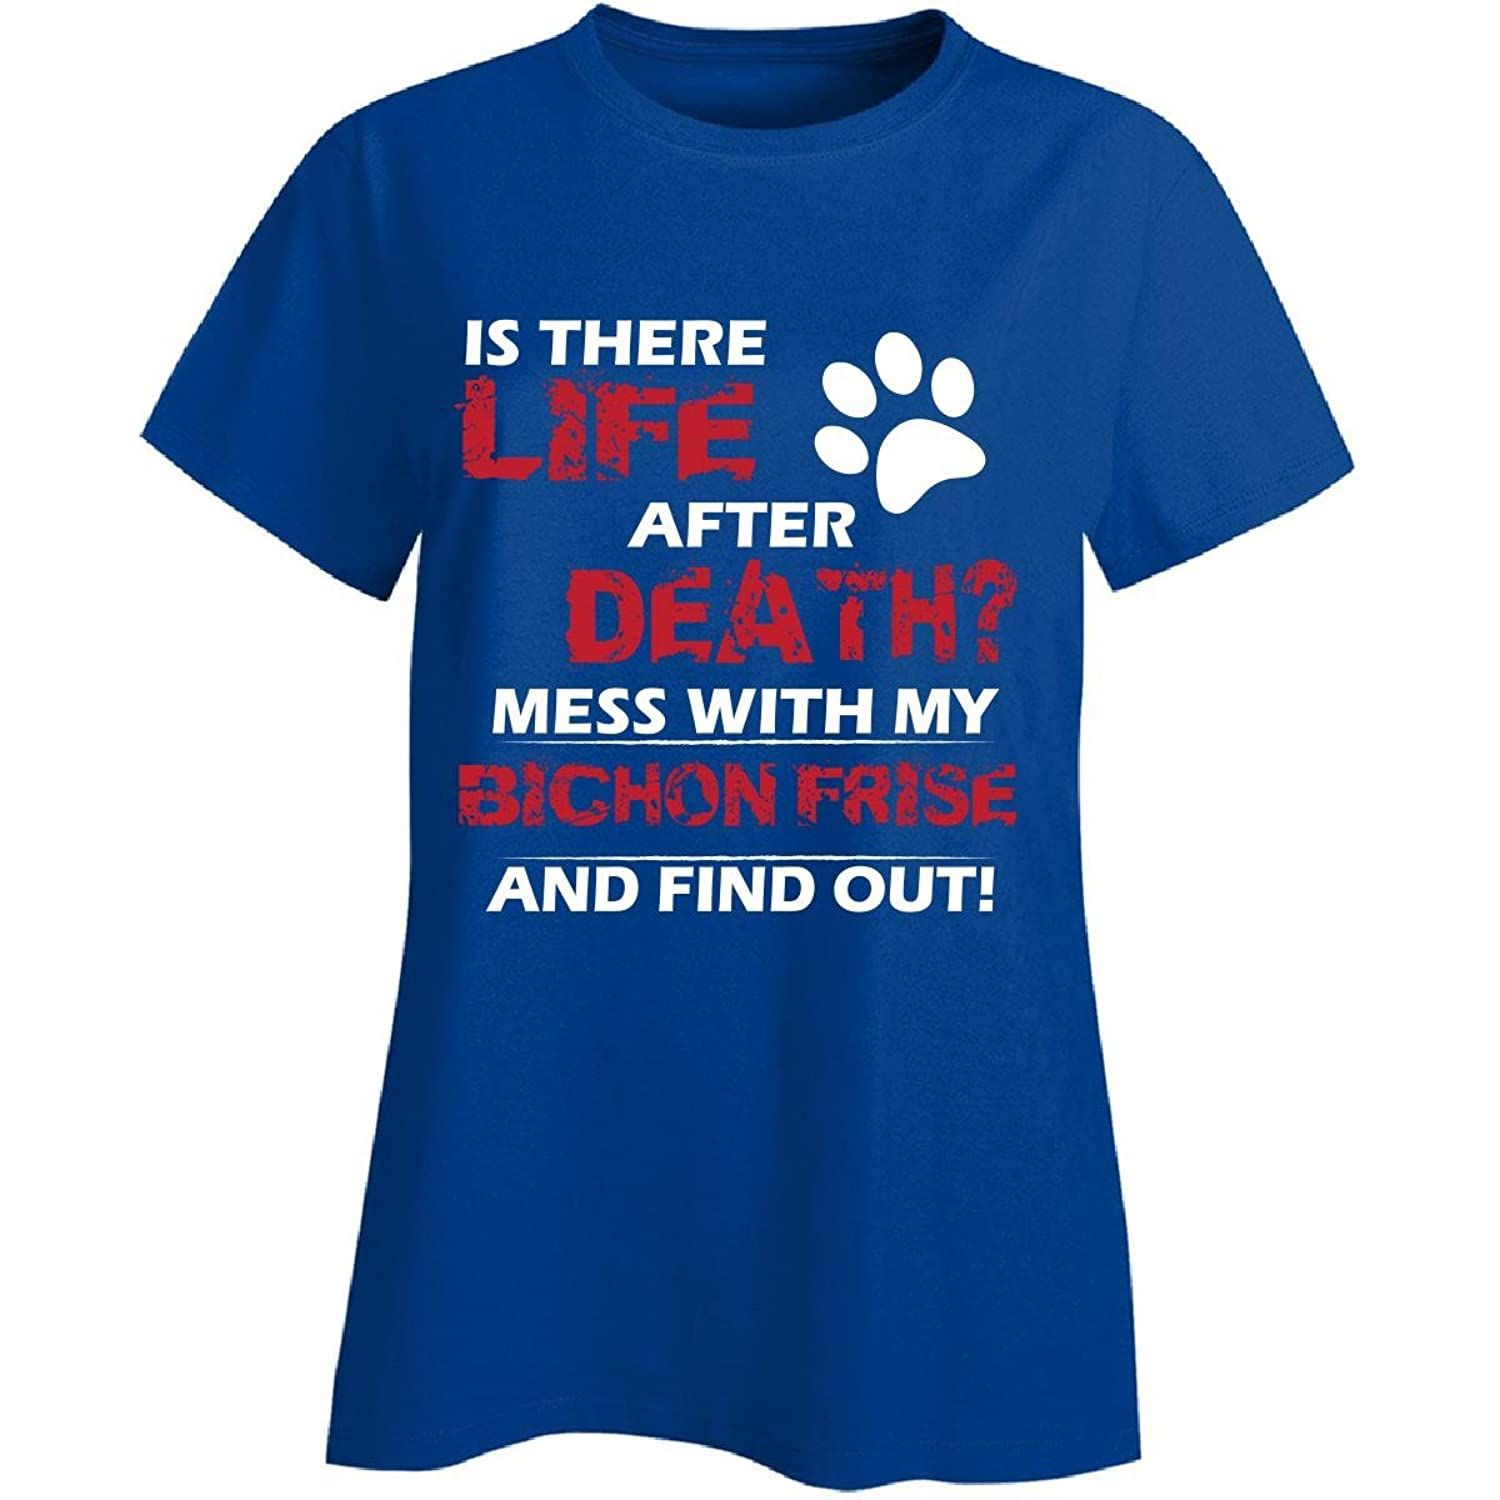 Life After Death Mess With My Bichon Frise And Find Out - Ladies T-shirt